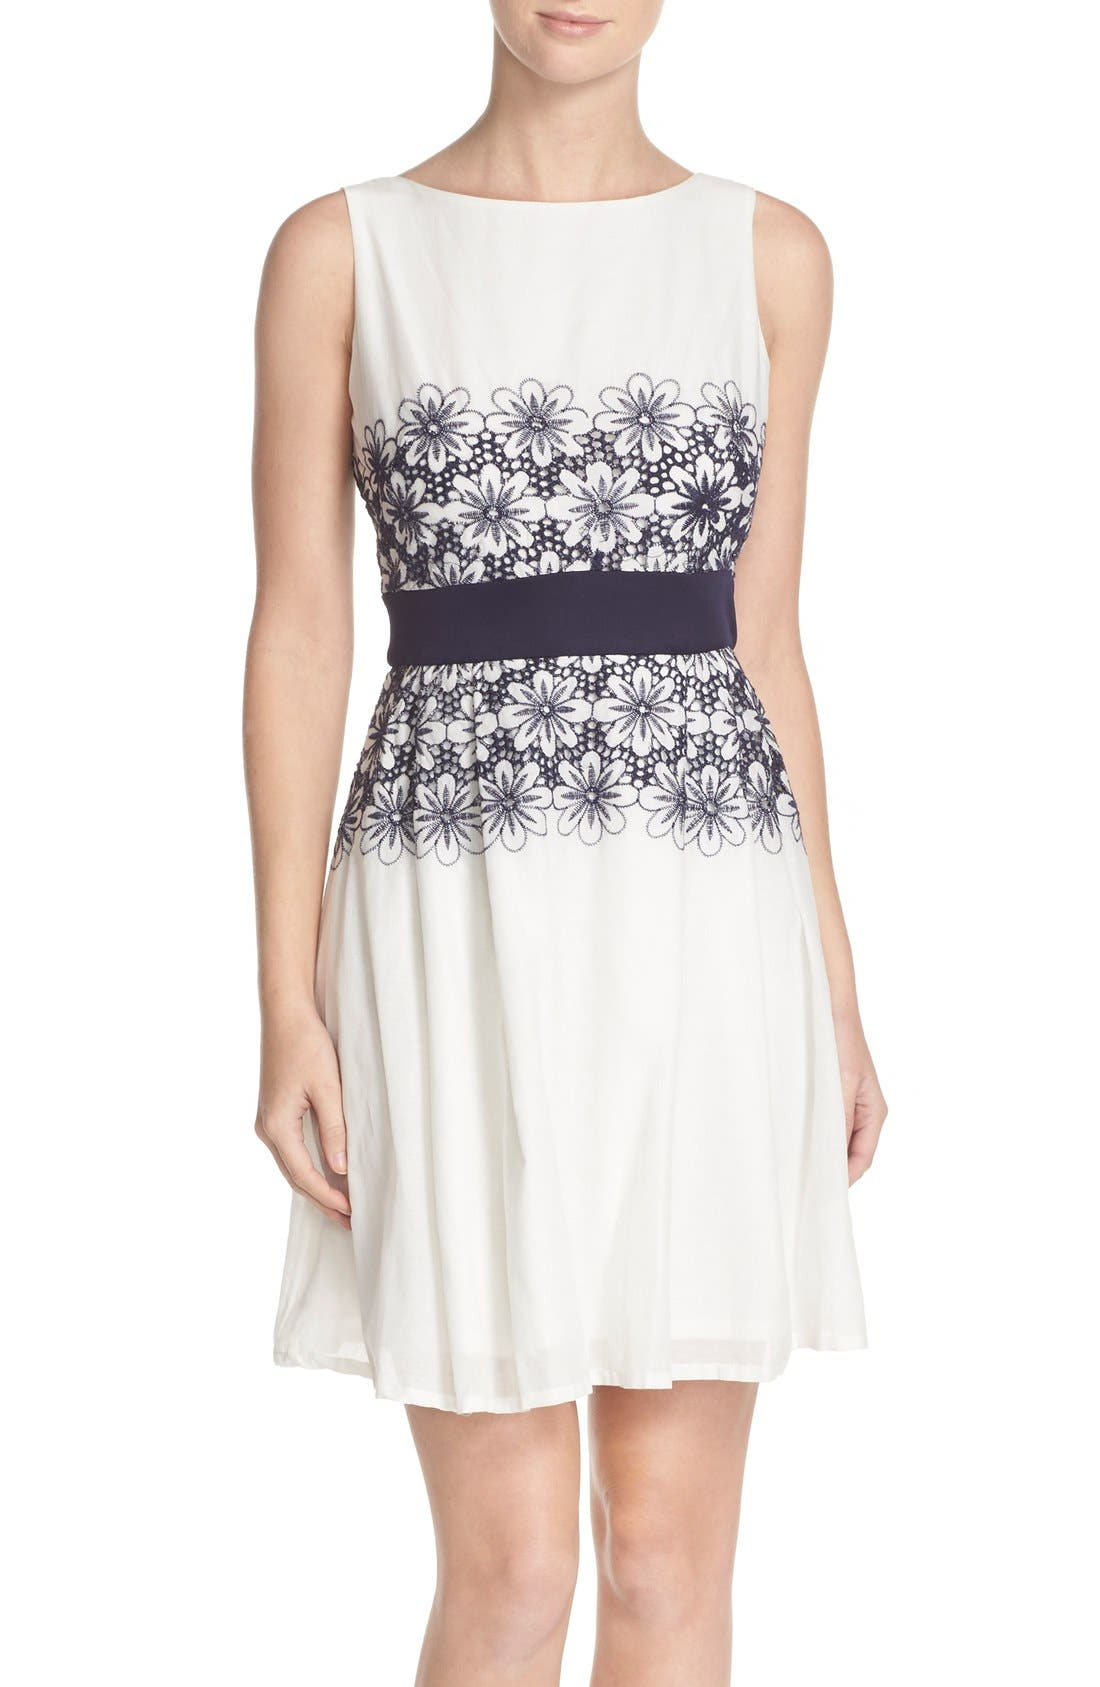 Alternate Image 1 Selected - Taylor Dresses Embroidered Fit & Flare Dress